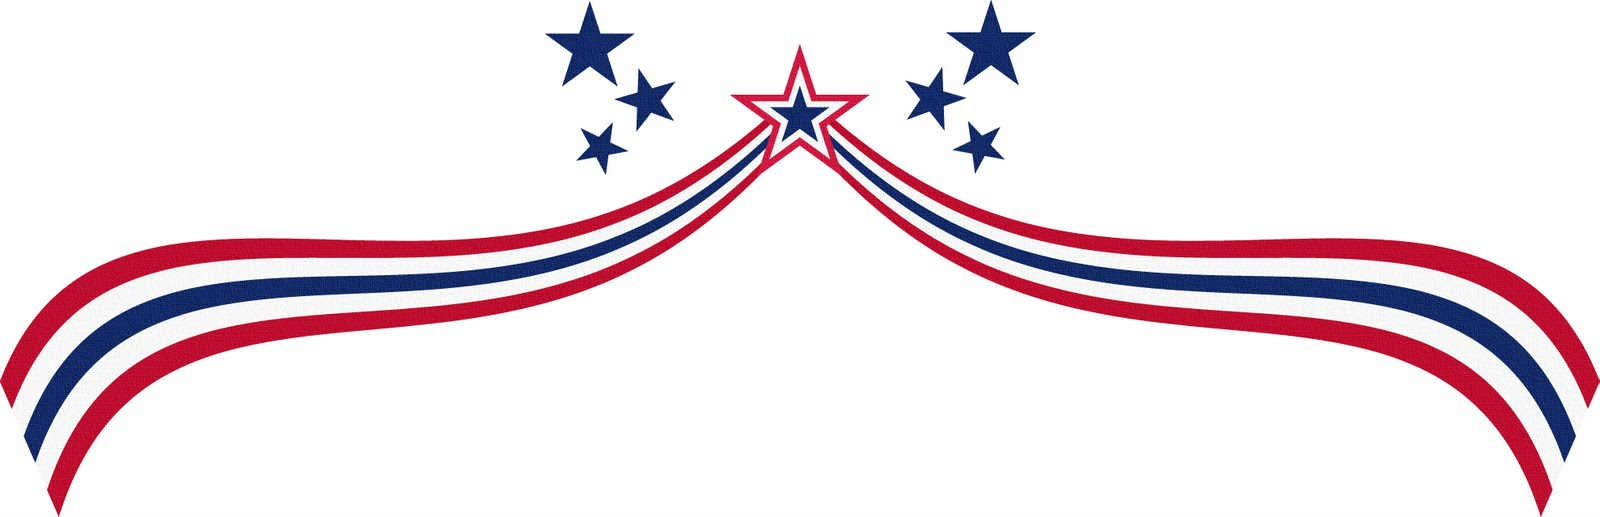 1600x517 Independence Day Clipart Free Border